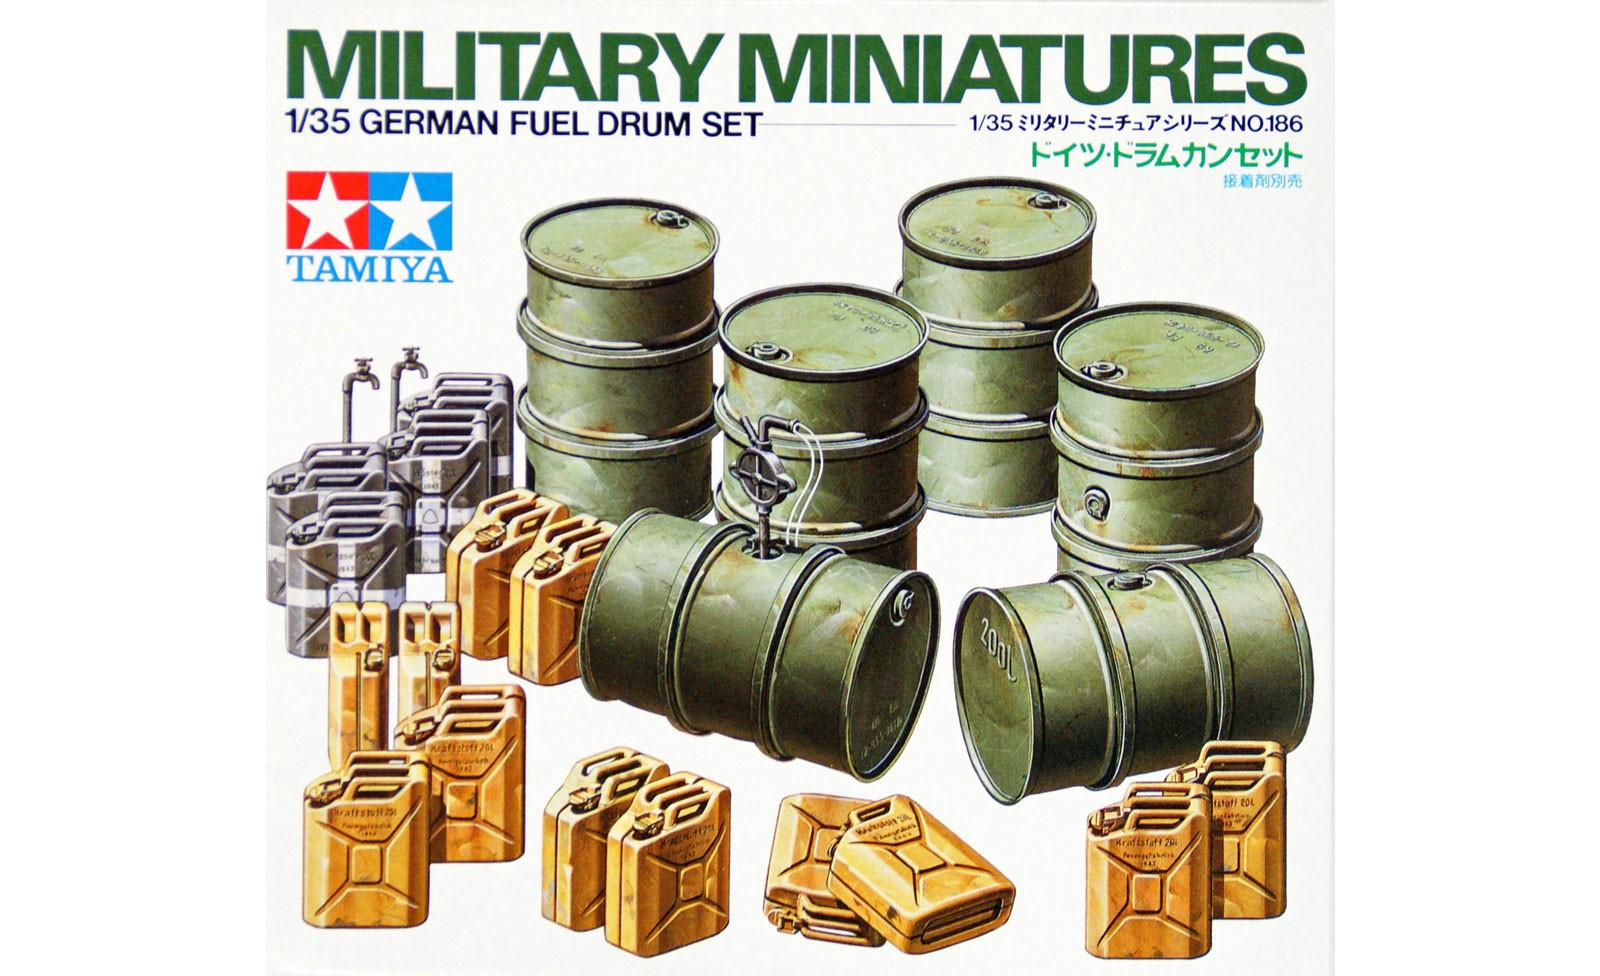 German Fuel Drum Set - Tamiya 35186 - plastic model kit - 1/35 scale